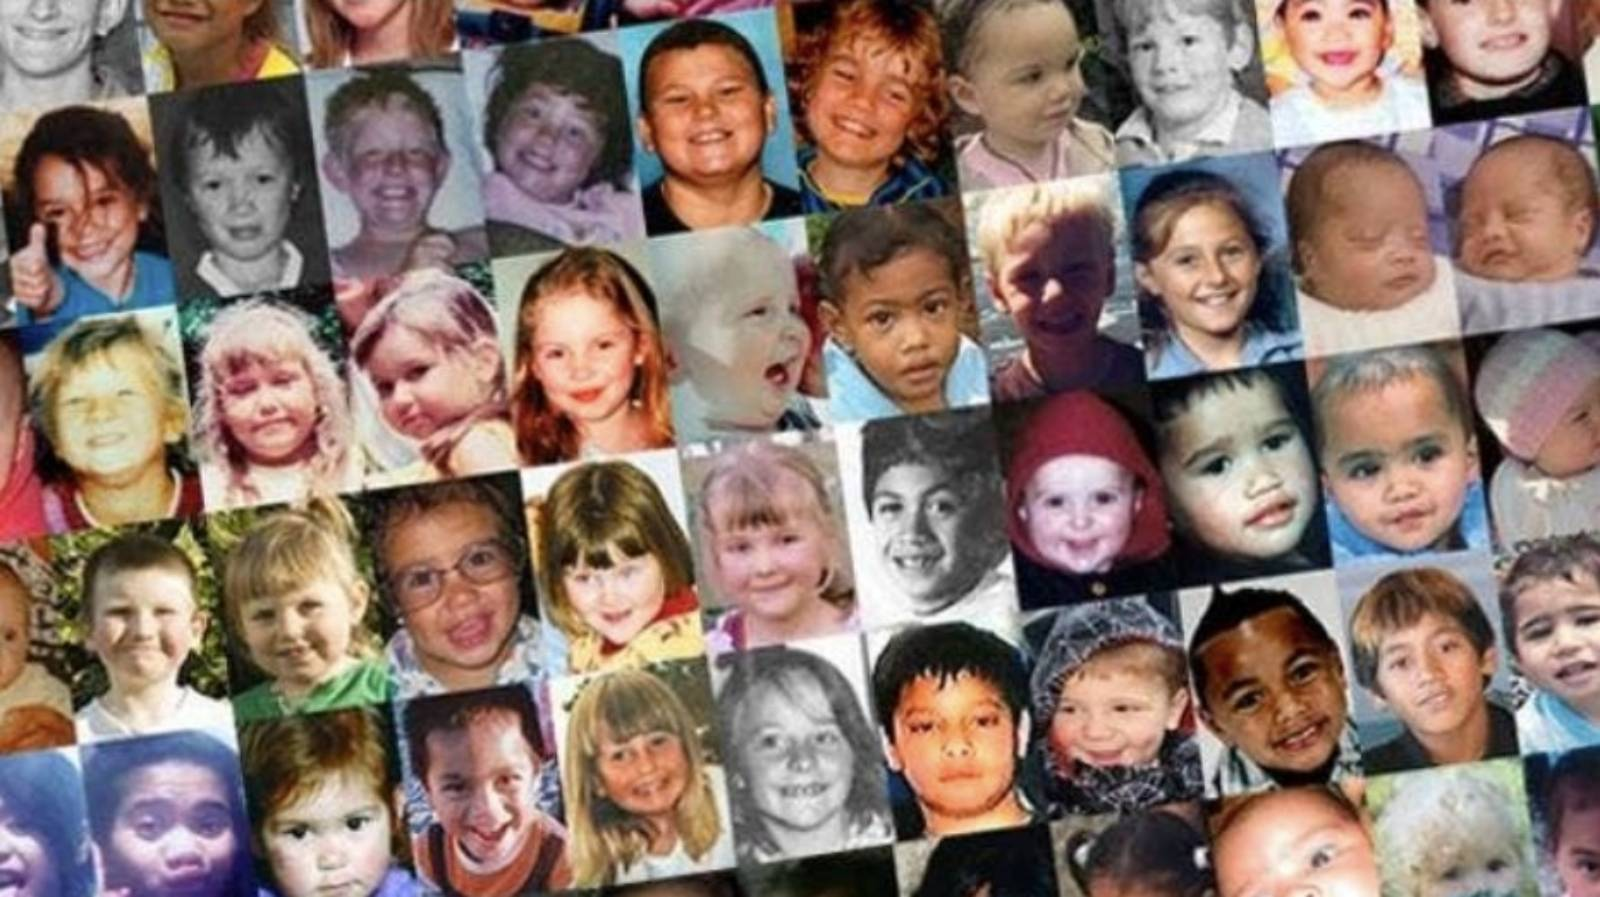 Our preoccupation with Māori child abuse at the expense of all victims